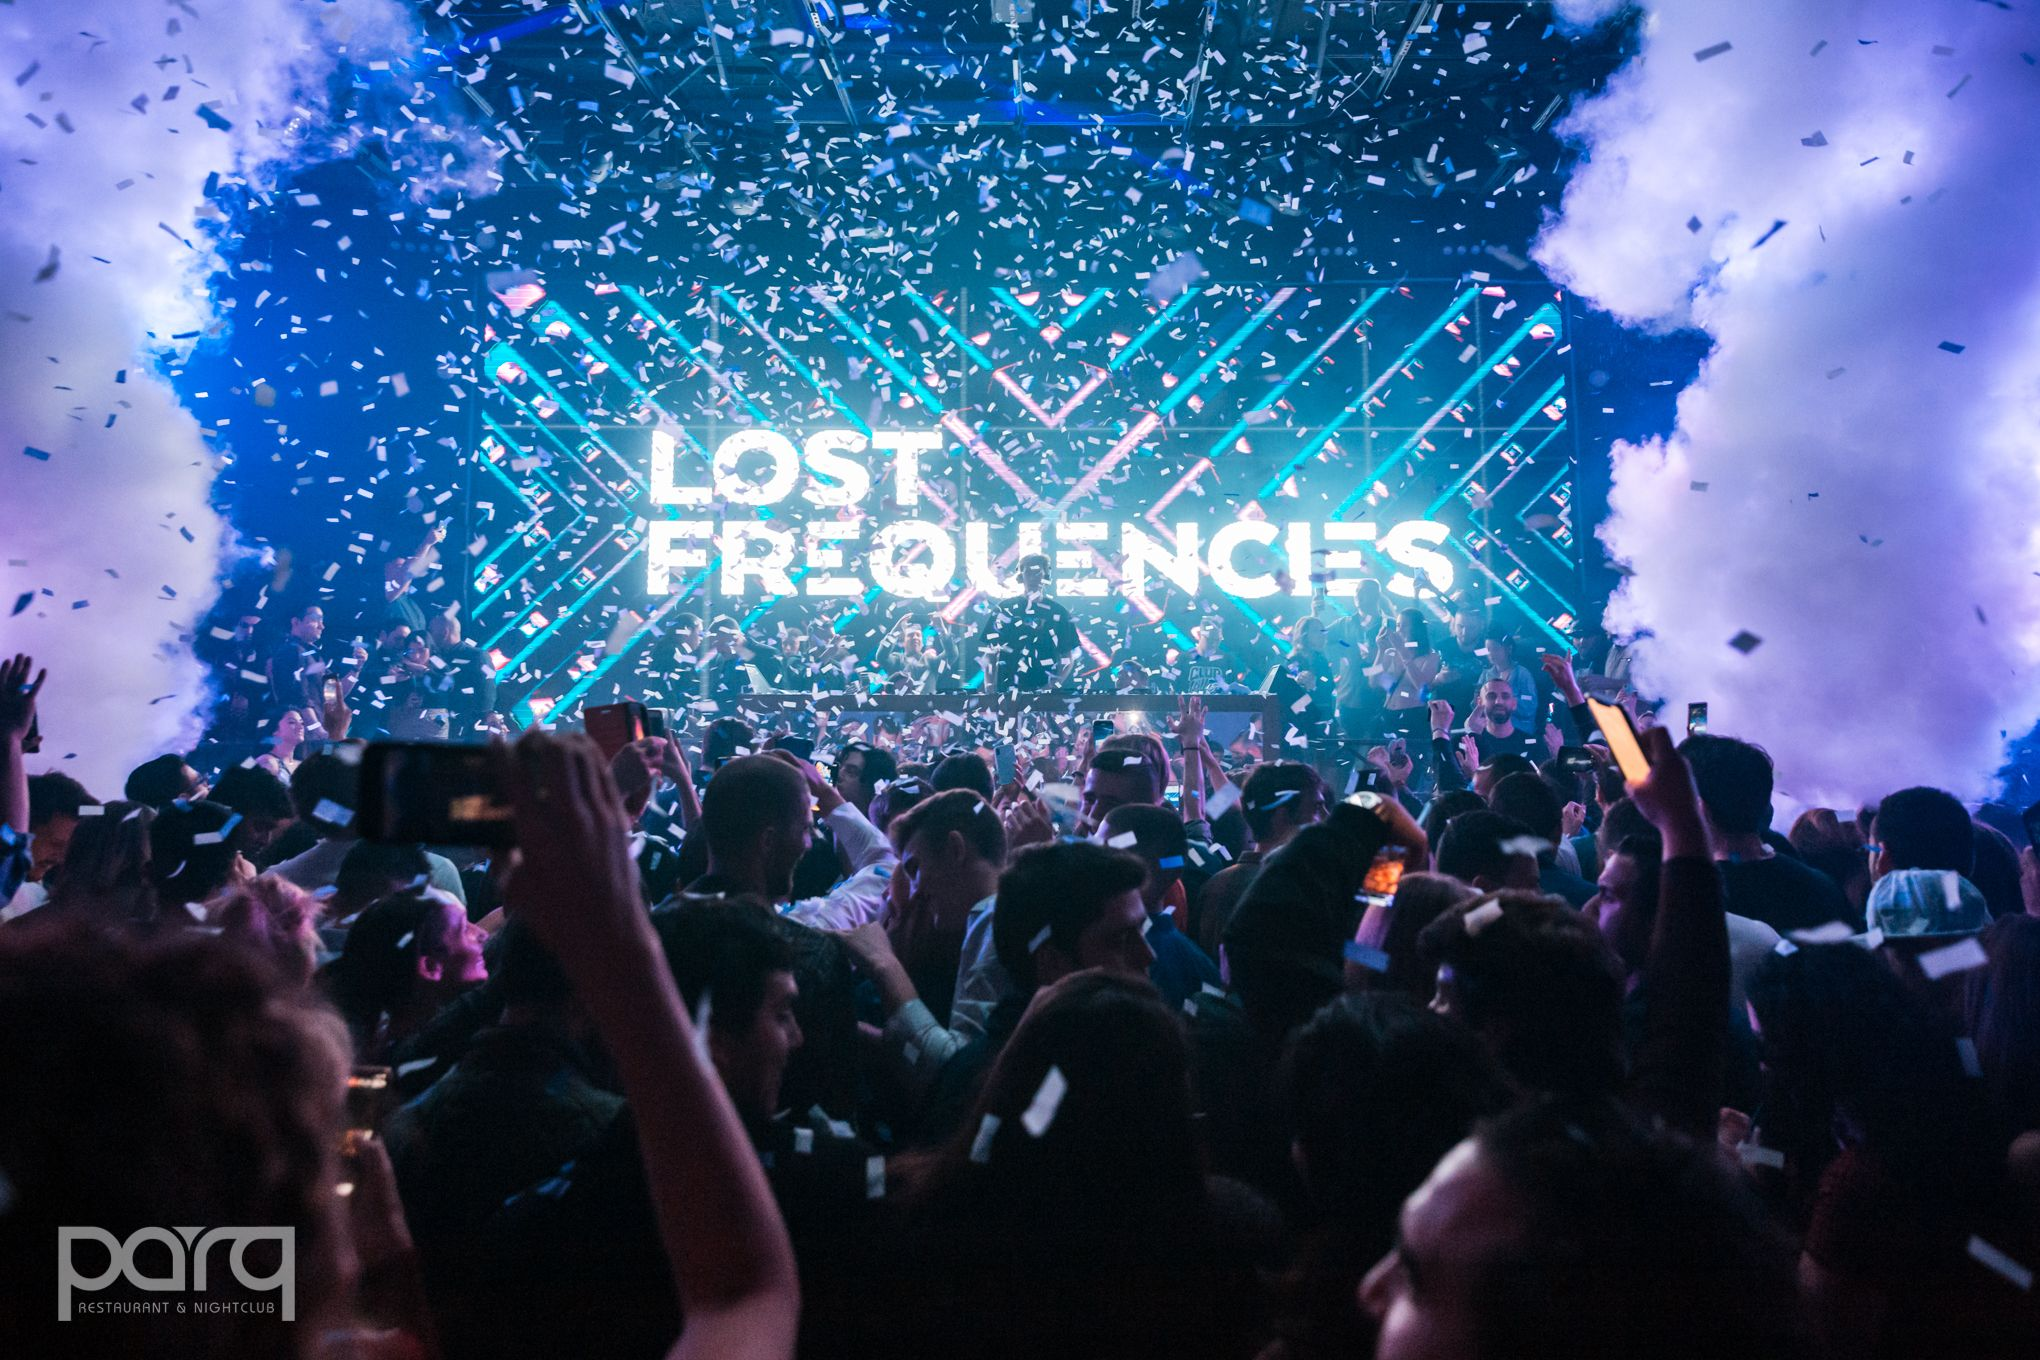 02.23.19 Parq - Lost Frequencies-4.jpg